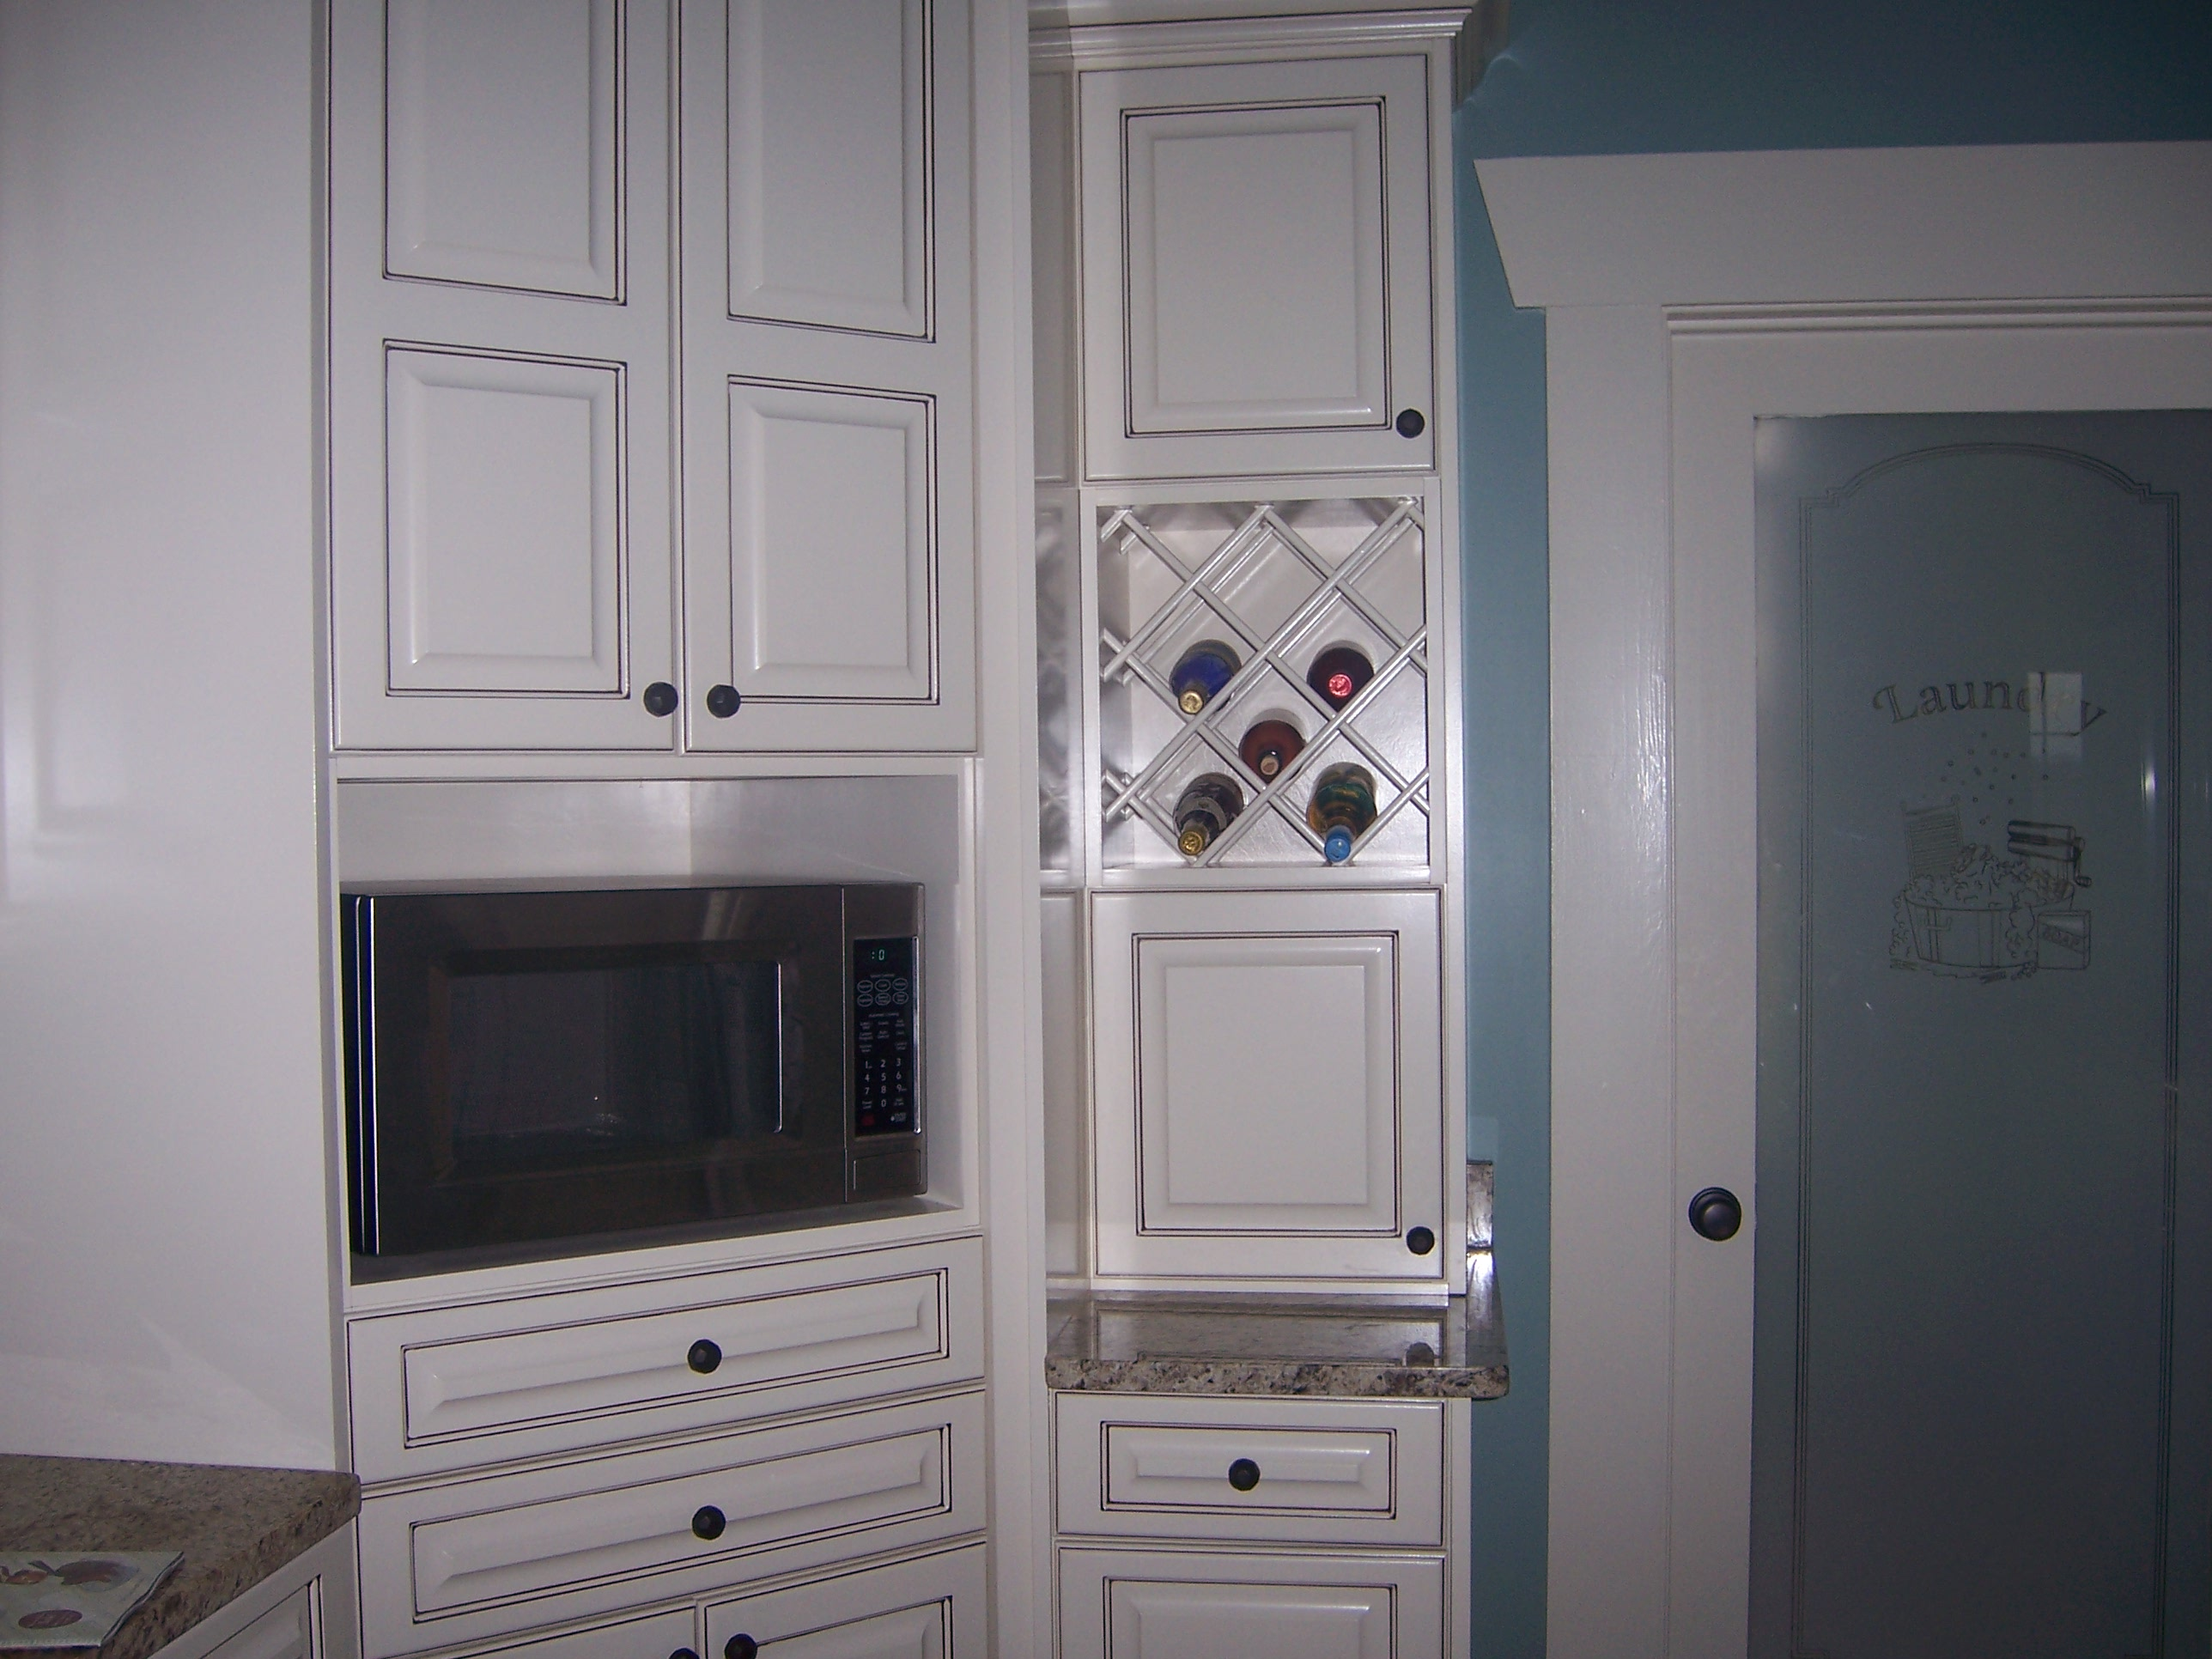 15 Images Of Cabinet Microwave  Djenne Homes